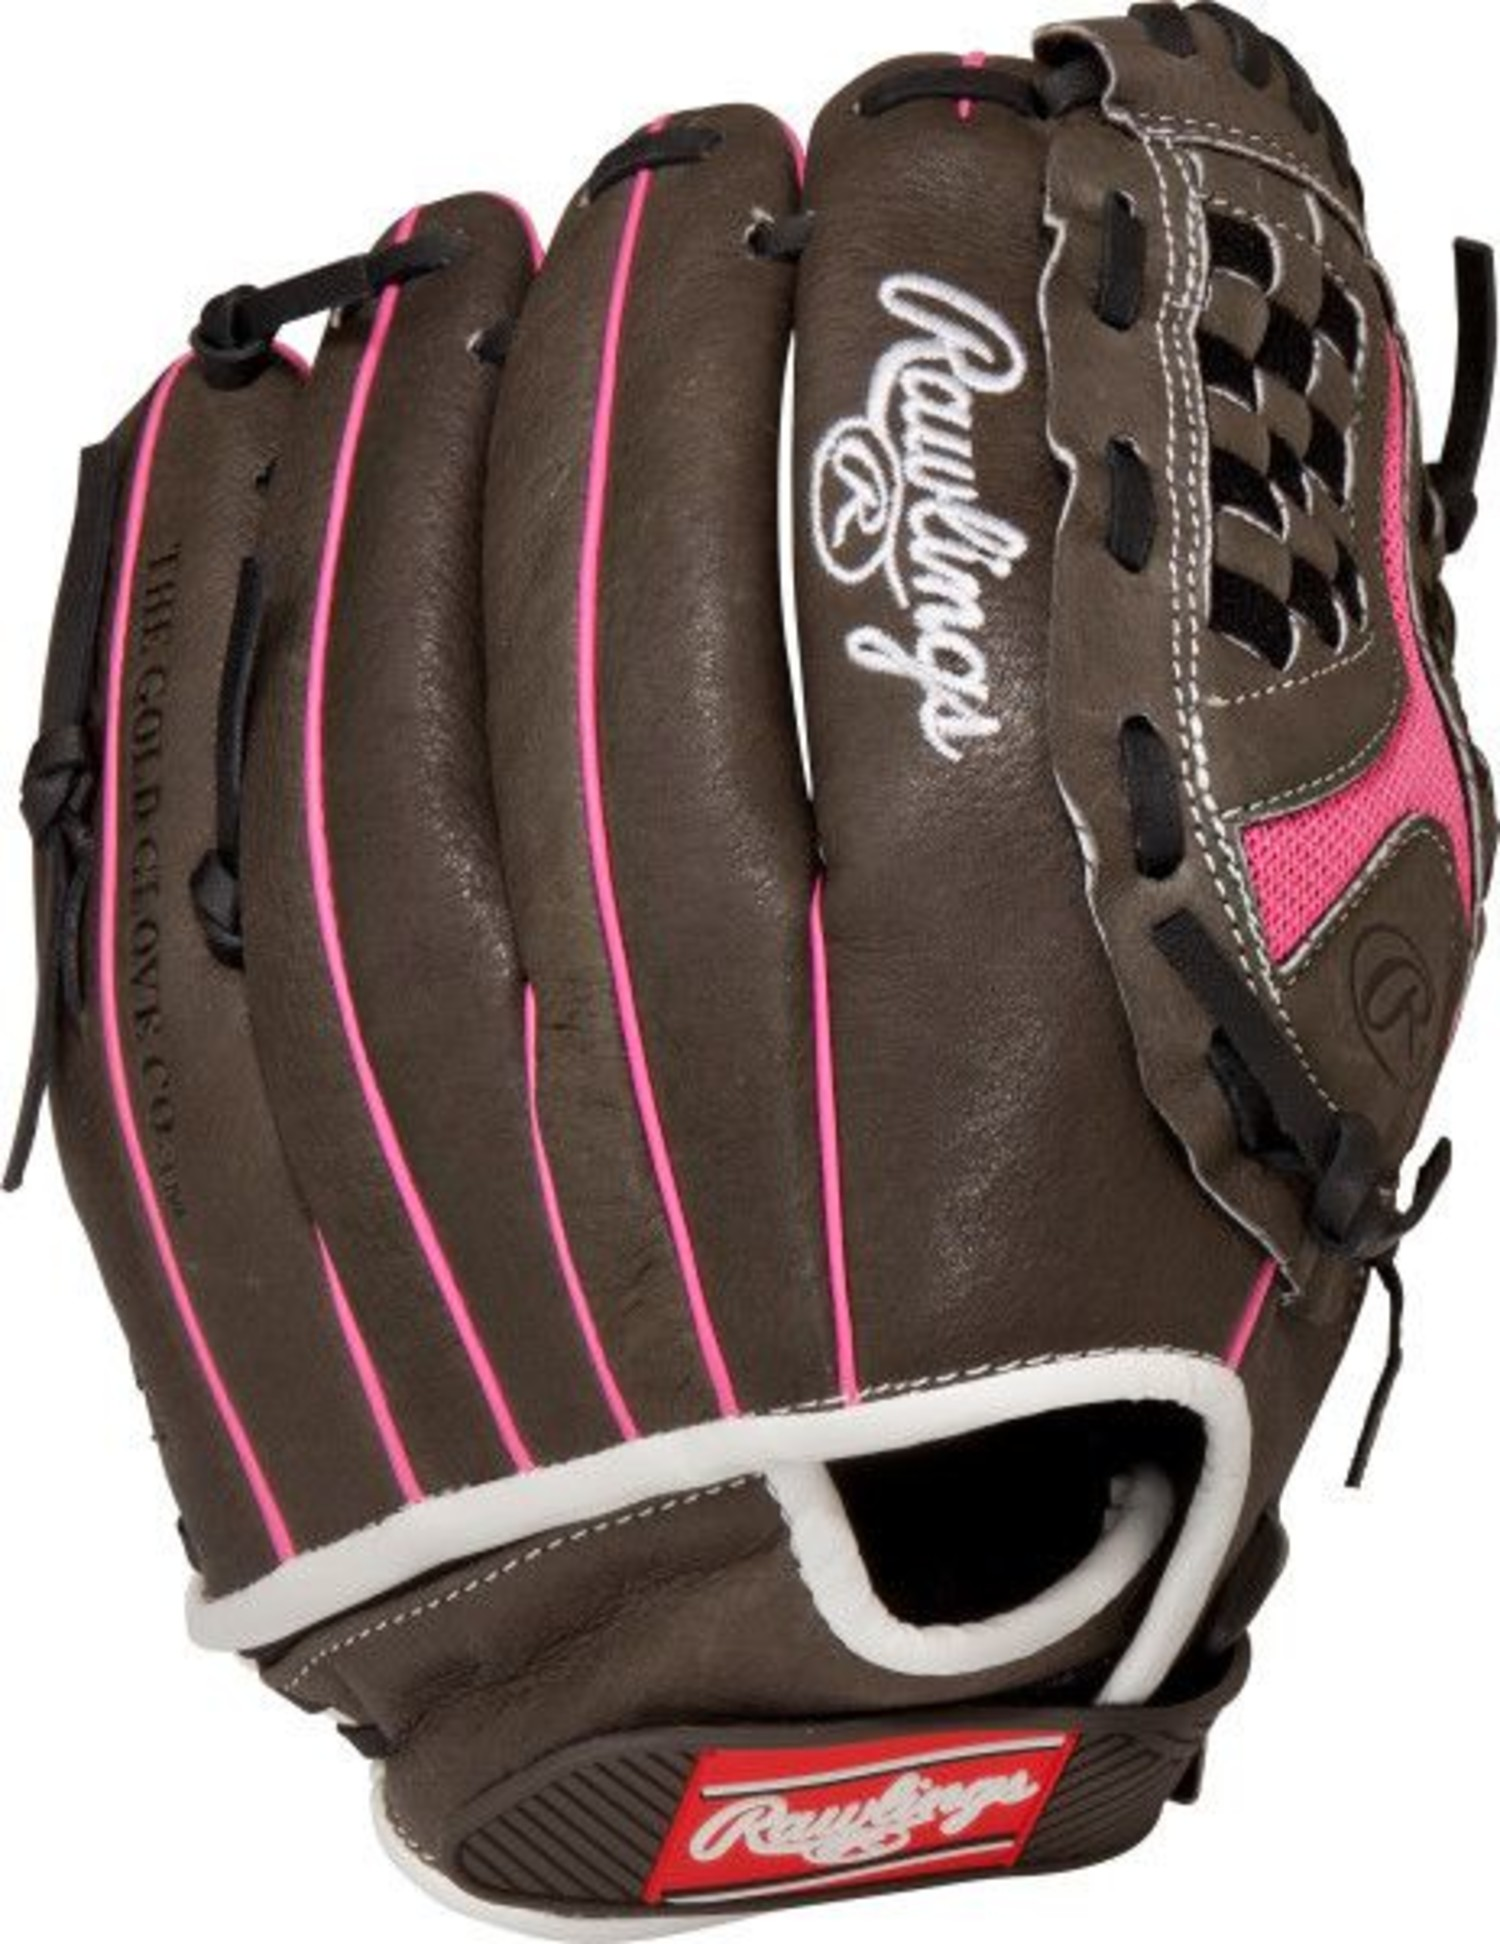 Rawlings Storm Youth Series Softball Gloves